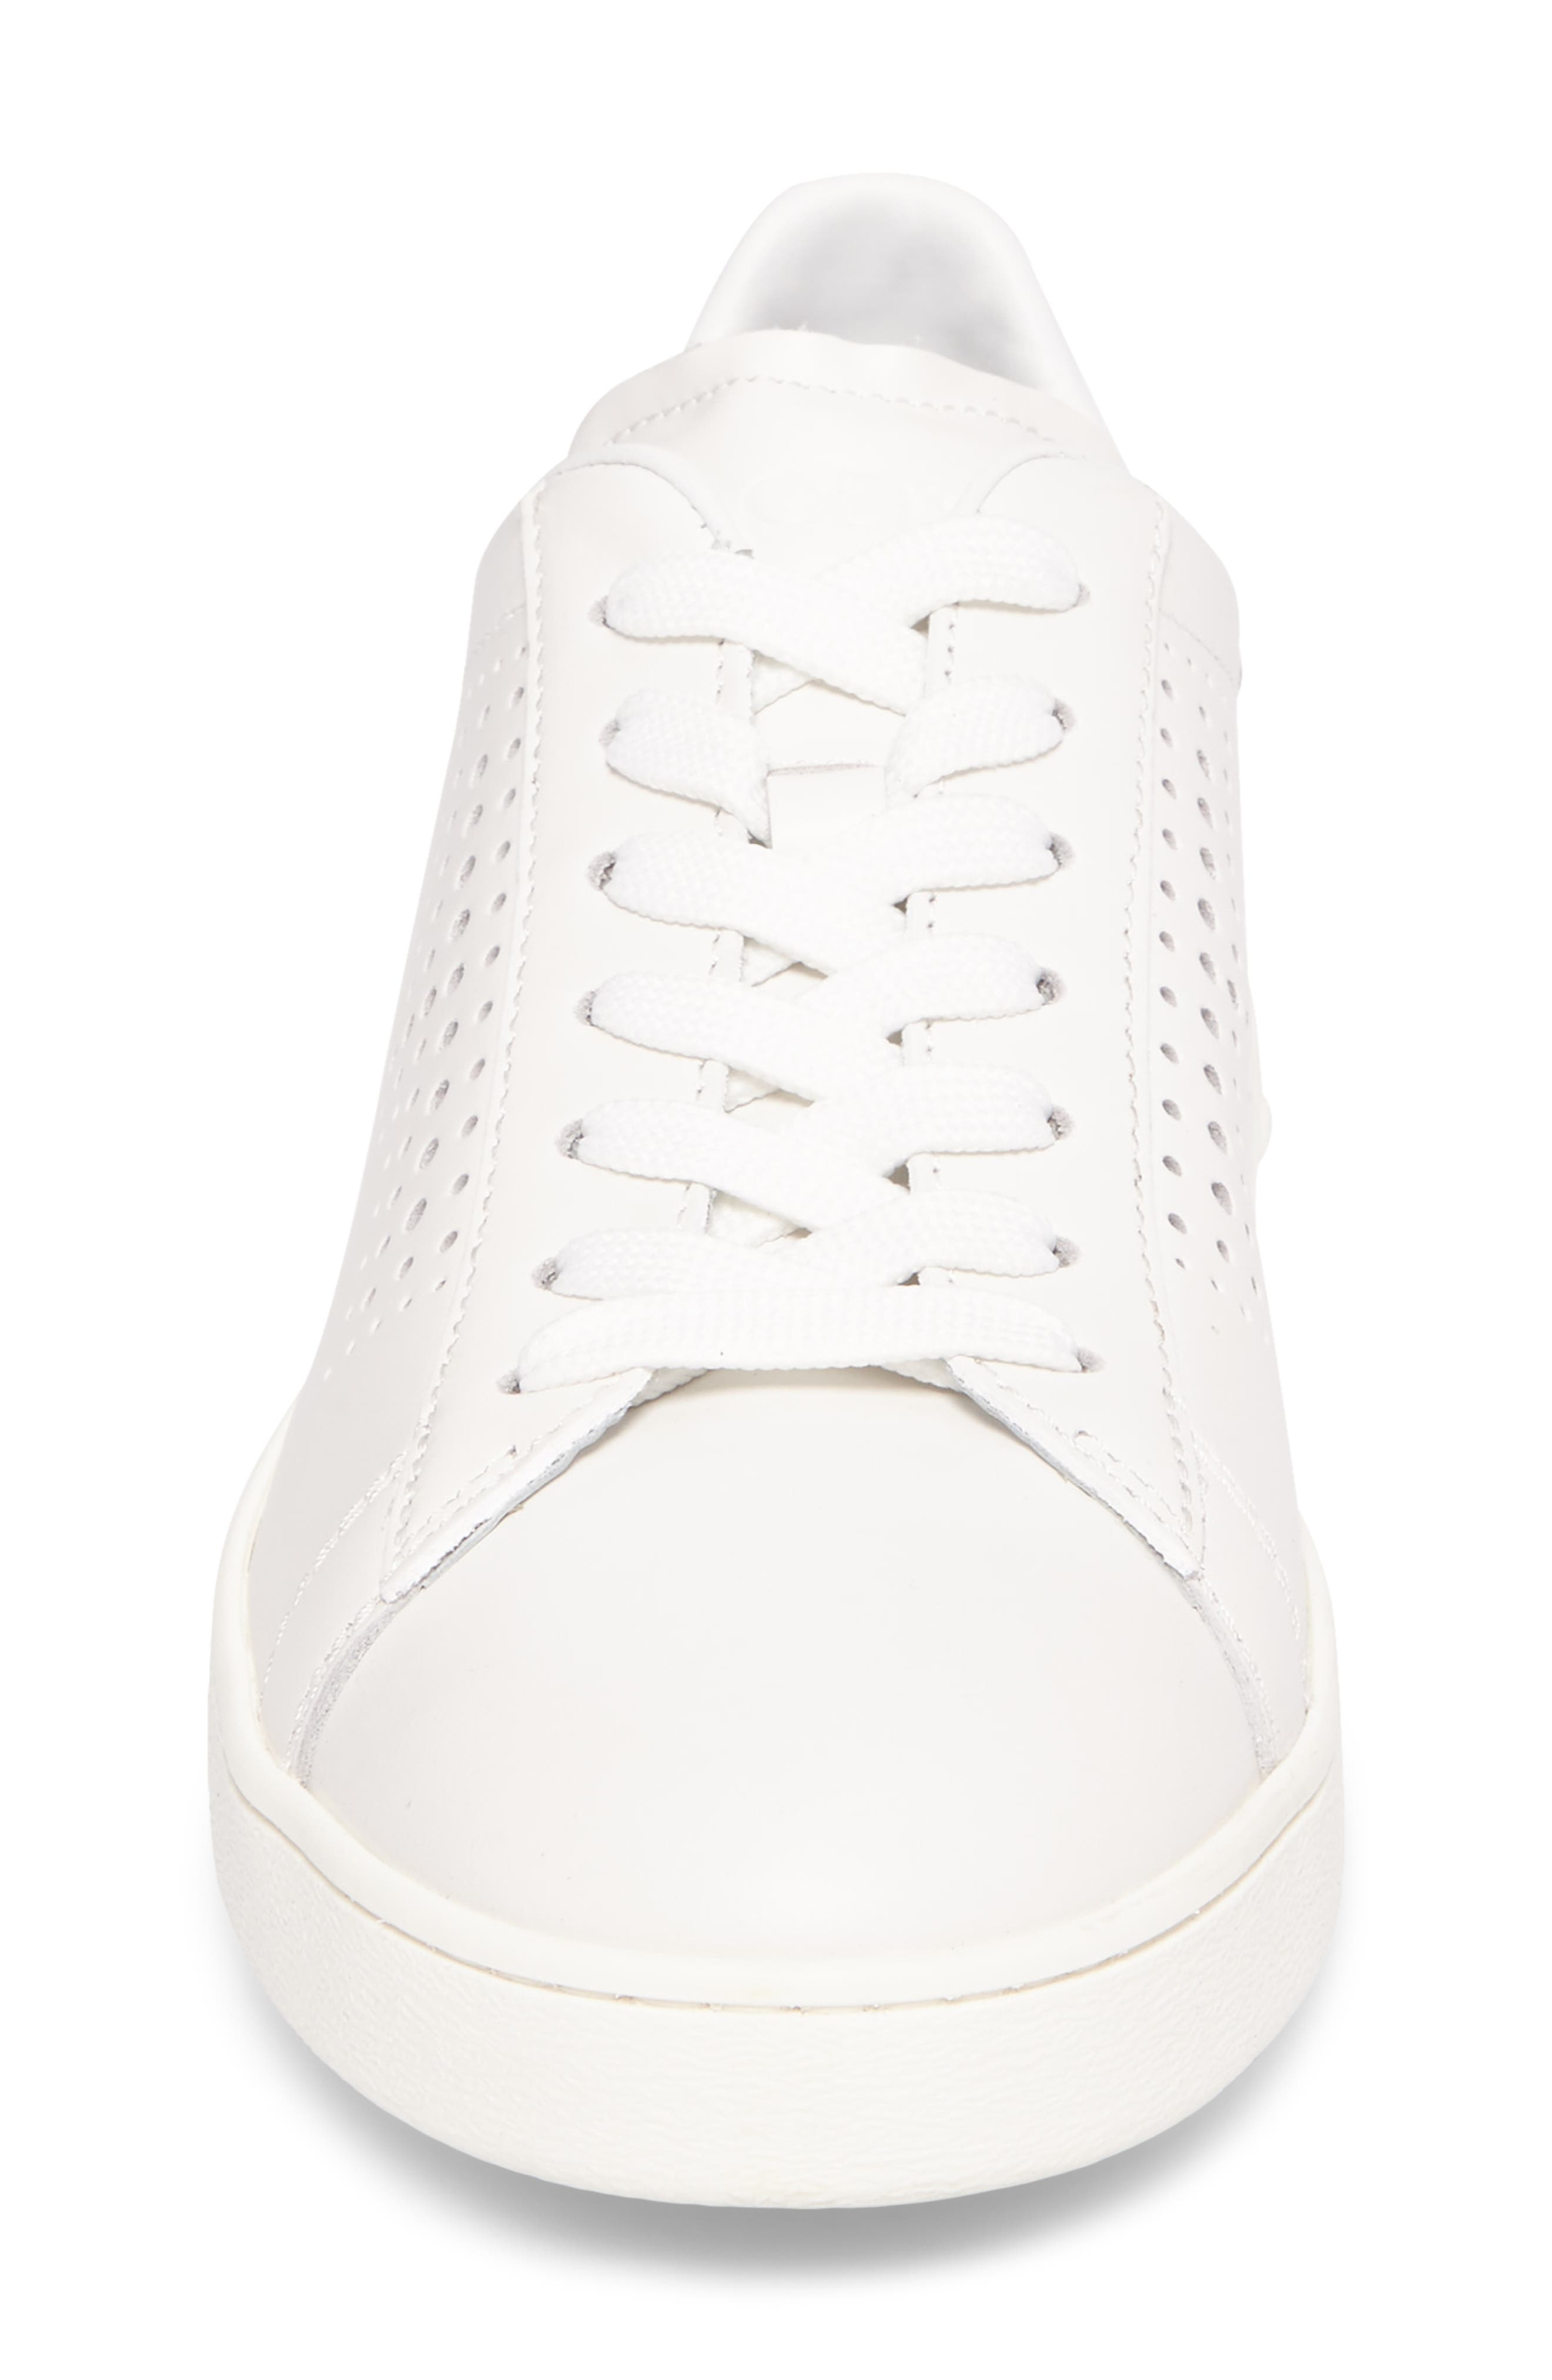 Perforated T Sneaker,                             Alternate thumbnail 4, color,                             100